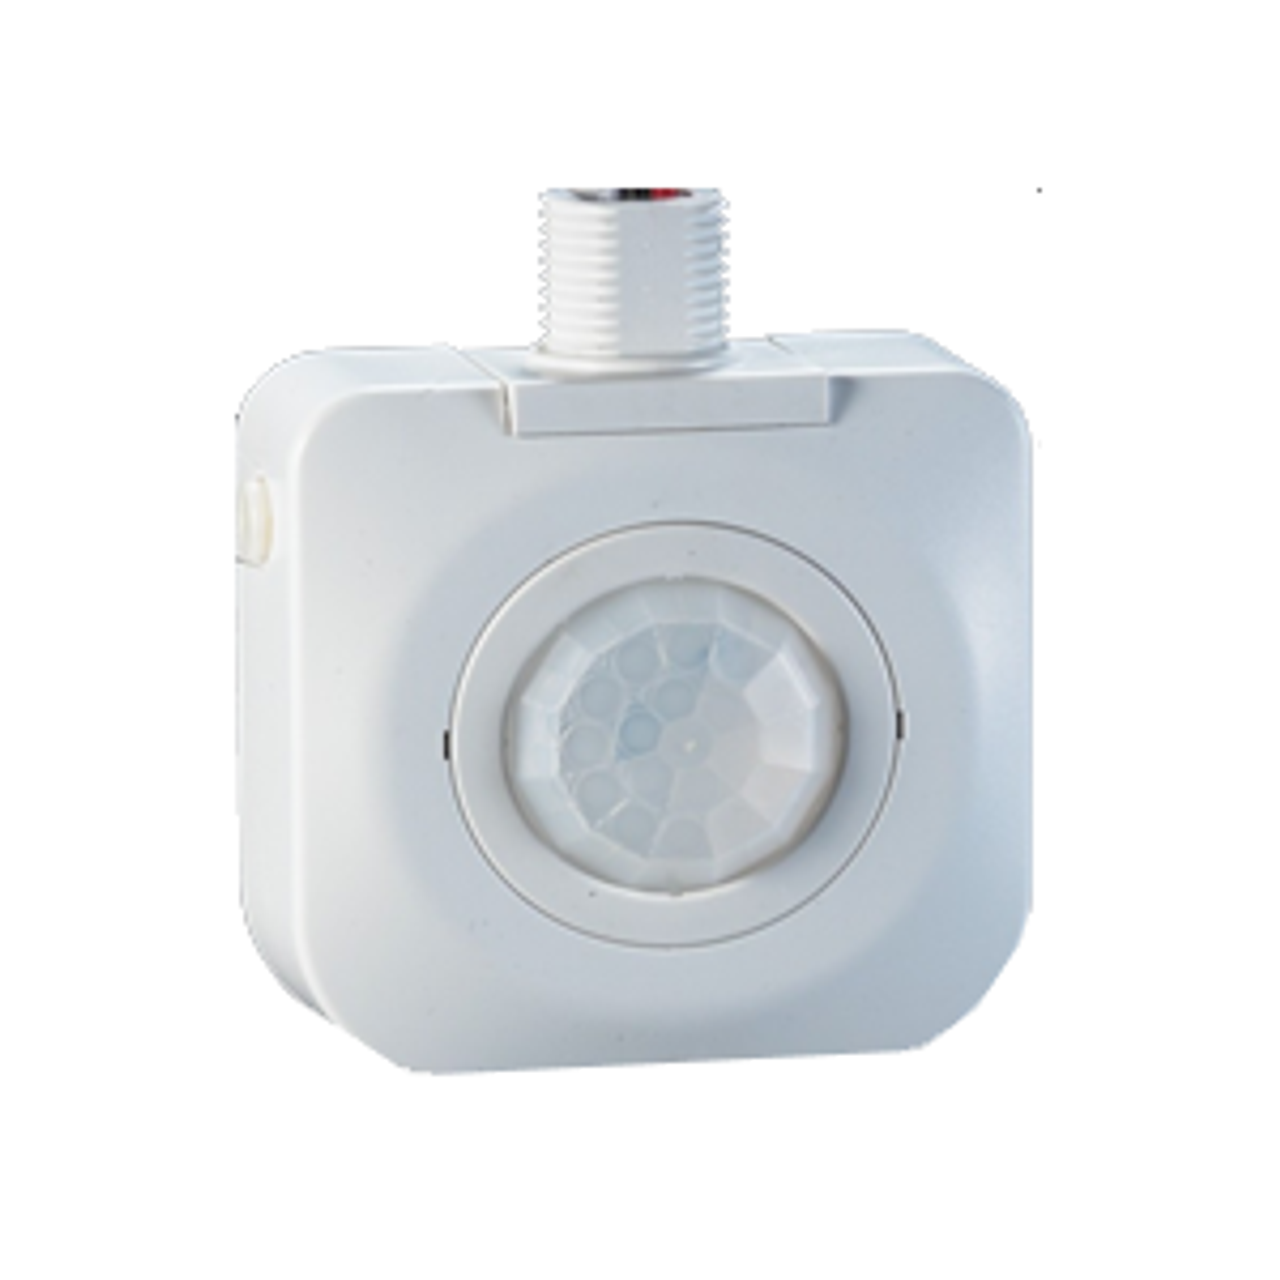 """Overview Specifications Place of Origin:  Zhejiang, China (Mainland)  Brand Name:  YOTI  Model Number:  YM2501A  Usage:  High Bay/Low Bay PIR Sensor  Theory:  PIR  Output:  Occupancy Sensor  Color:  White  Packaging & Delivery Packaging Details: 49*27*36cm/0.0476CBM, 50pcs/Carton BASIC OPERATION Passive Infrared Technology(PIR) is used to sense occupancy by comparing the infrared energy from an object in motion and the background space. It detects changes in the infrared energy given off by occupants as they move within the field-of-view.   The sensor detects changes in the infrared energy given off by occupants as they move within the field-of-view. When occupancy is detected, a self-contained relay switches the connected lighting load on. No initial field calibration or sensitivity adjustments are required. YM2501A designed to switch both LED and fluorescent lighting loads. Robust relay protection makes YM2501A units capable of enduring the extreme inrush conditions often encountered with LED loads.   TIME DELAY ADJUSTMENT When people leave, the load can still work within the set time period. It can be adjusted from 15 seconds up to 30 minutes. The left is minimum 15 seconds and the right is maximum 30 minutes. The time should be reduced only in heavy traffic area such as hallways, kitchens, copier rooms, etc. to achieve maximum energy savings.   INSTALLATION The YM2501A mounts directly to an industrial fluorescent fixture or an electrical junction box through a standard 1/2"""" knockout using the provided lock-nut.   FEATURES High/Low occupancy operation: supplied with three lens trim rings Fast, easy time delay setting: can be set at any time without requiring power to the sensor; time delay is variable from 15s-30m Instantly verify fixture operation and wiring connections: """"instant ON"""" closing relay fires lamps in under 5 seconds Easy to installation: No need to disassemble the screws of fixture, saving time and effort Auto temperature calibration: automatically a"""